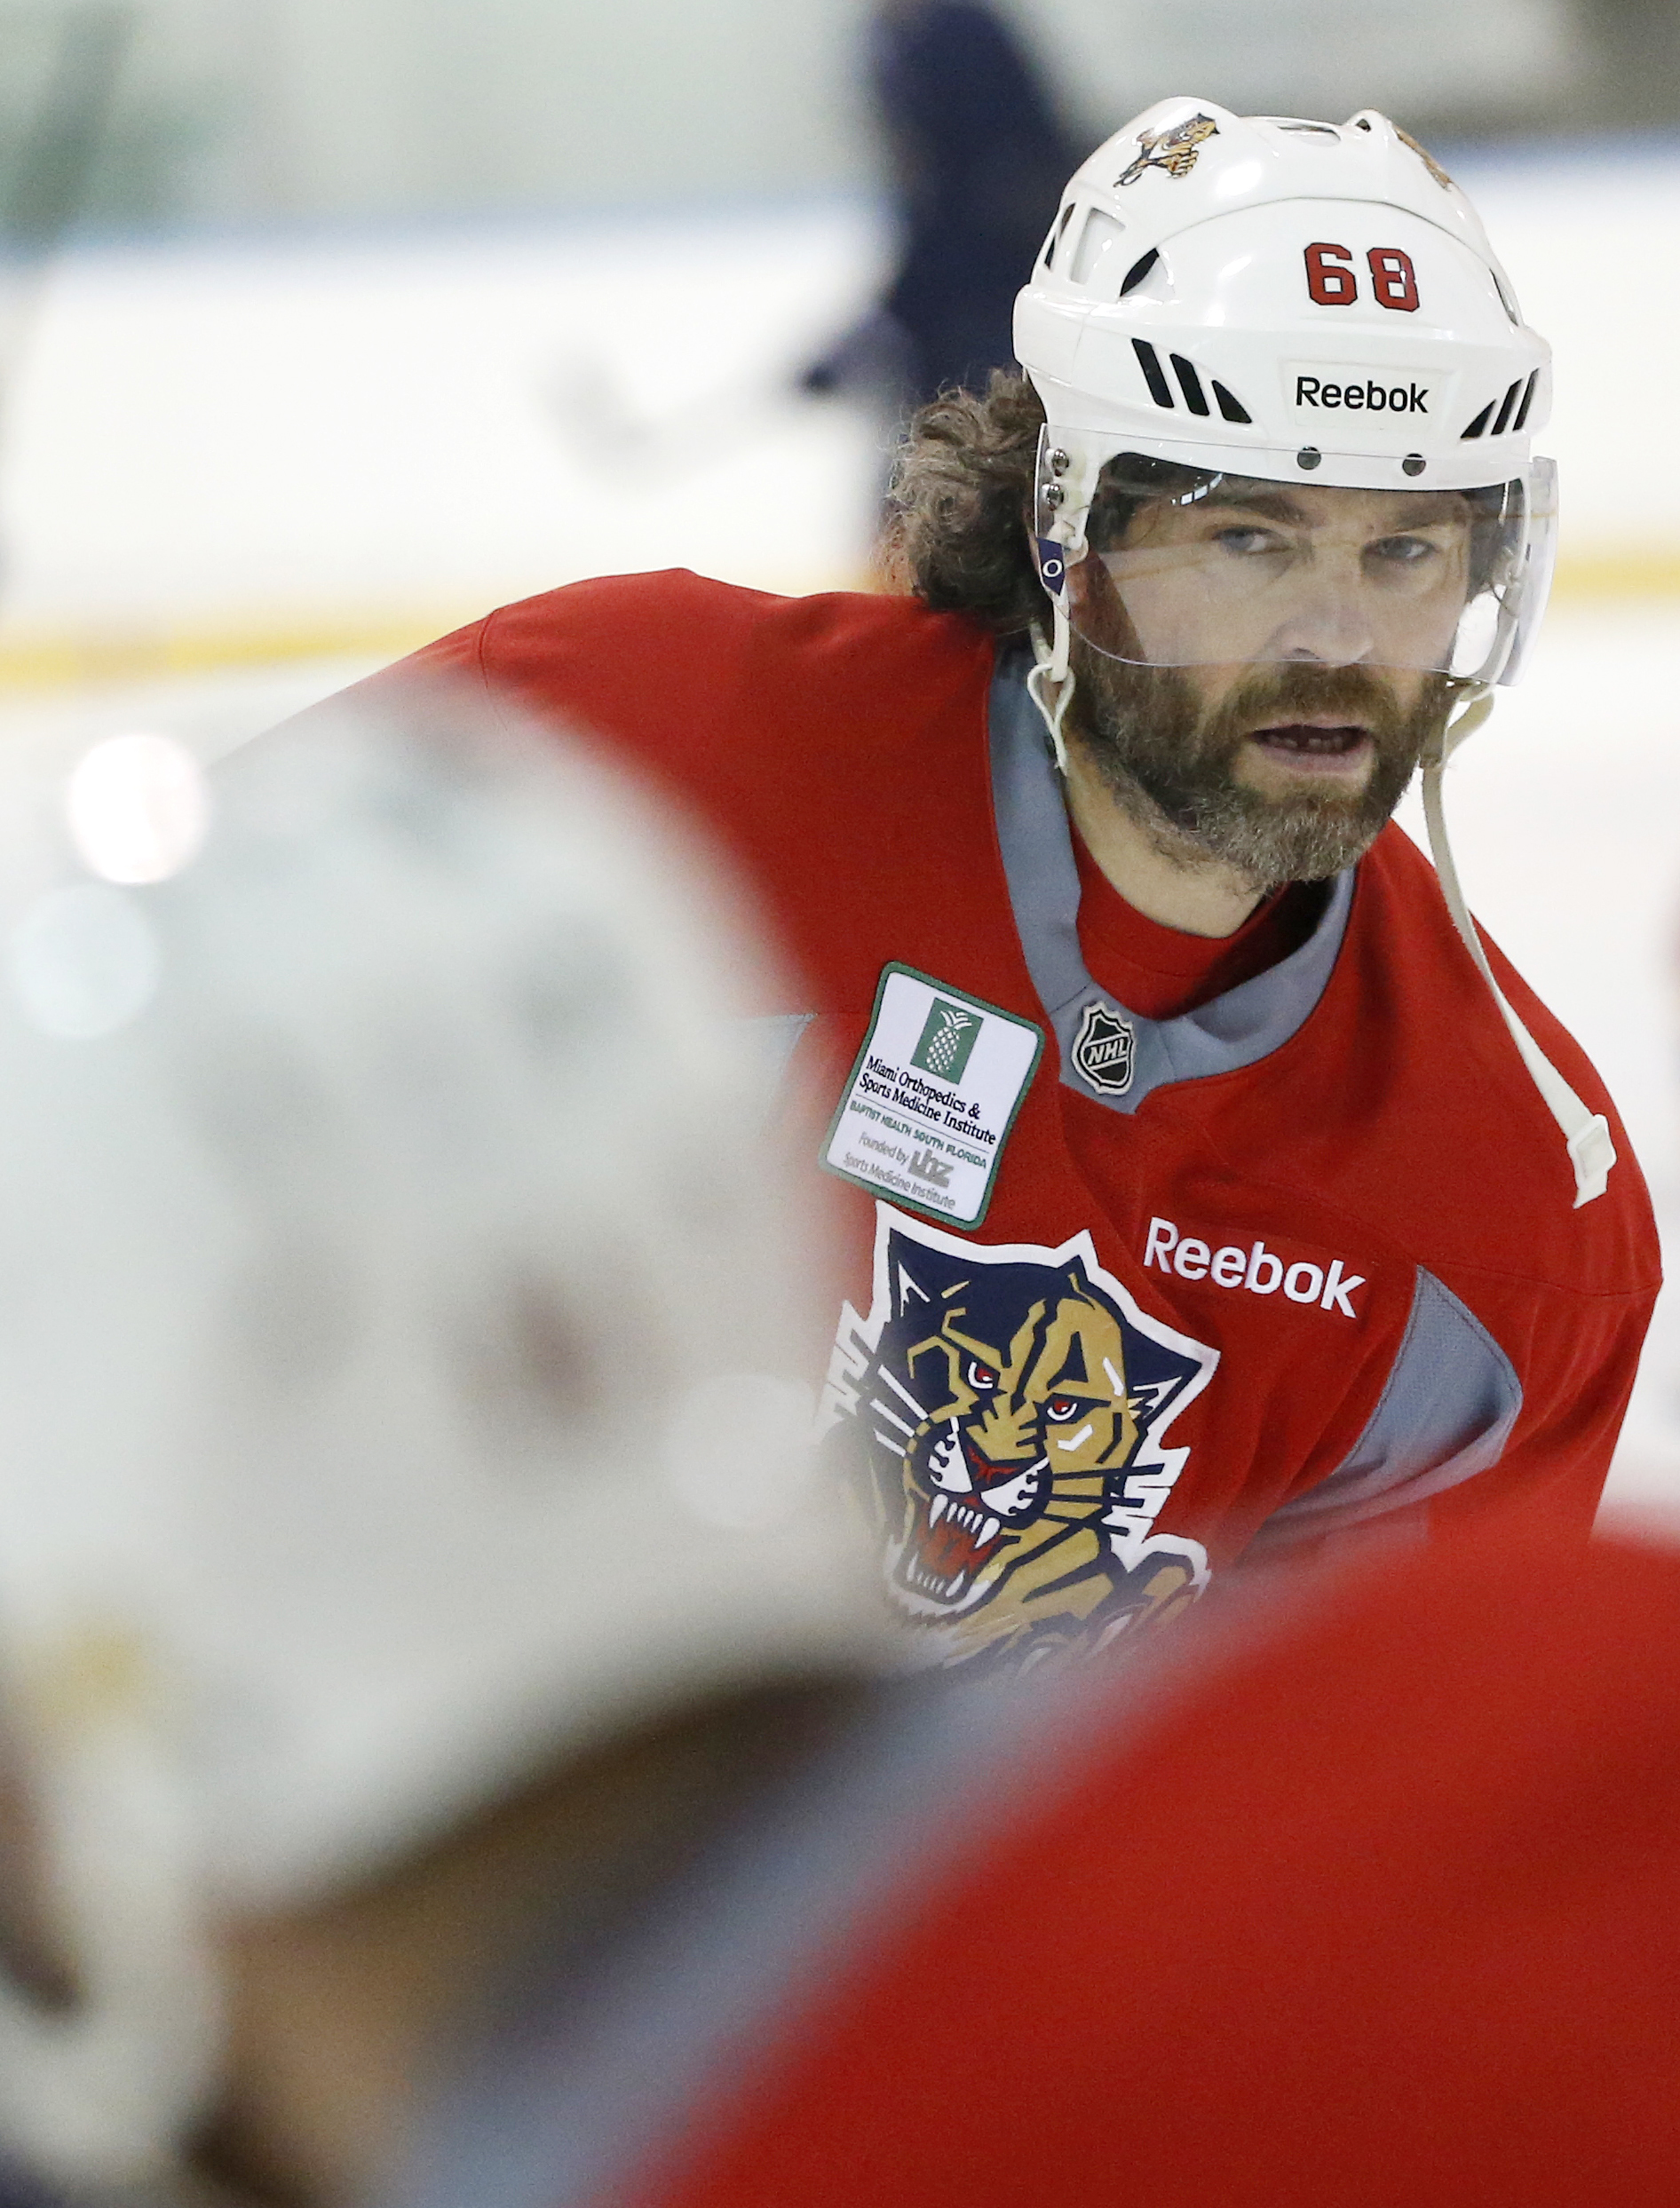 Florida Panthers right wing Jaromir Jagr prepares to pass the puck during a practice session, Tuesday, April 12, 2016, at the Panthers' practice facility in Coral Springs, Fla. The Panthers take on the New York Islanders in Game 1 of the first round of th